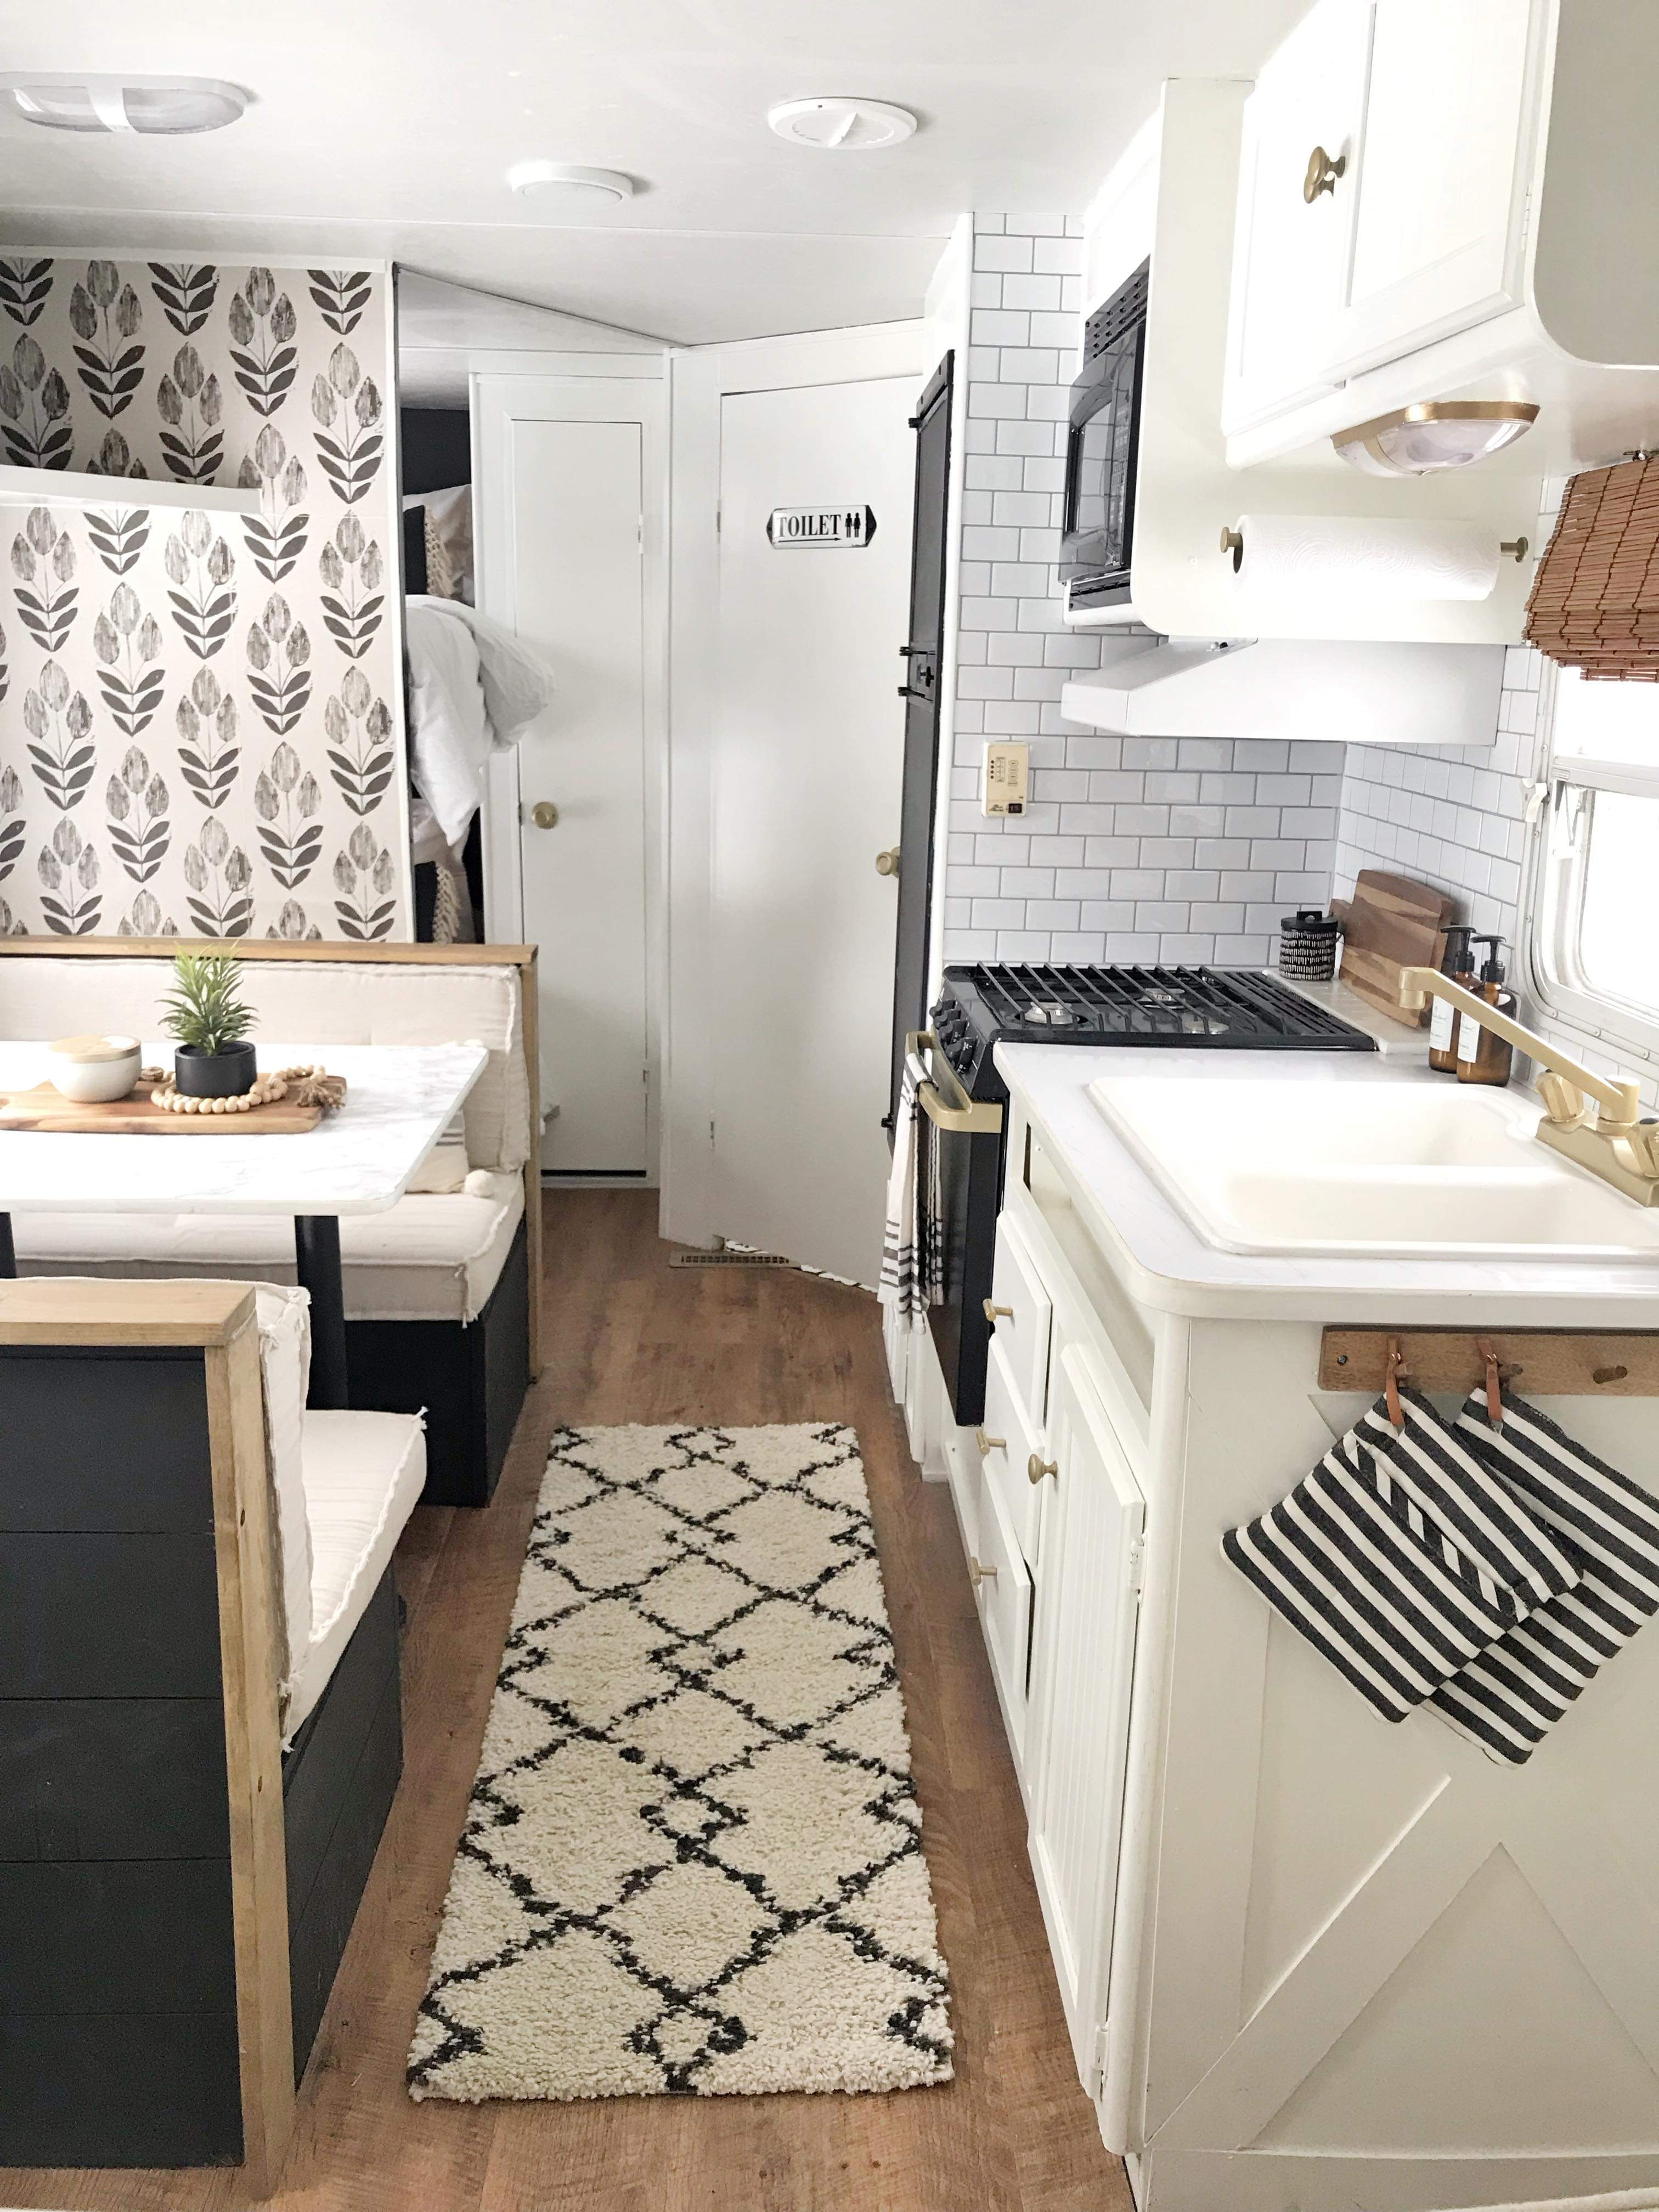 My 500 Camper Remodel That I Did All By Myself Proverbs 31 Girl Camper Trailer Remodel Kitchen Remodel Small Remodeled Campers